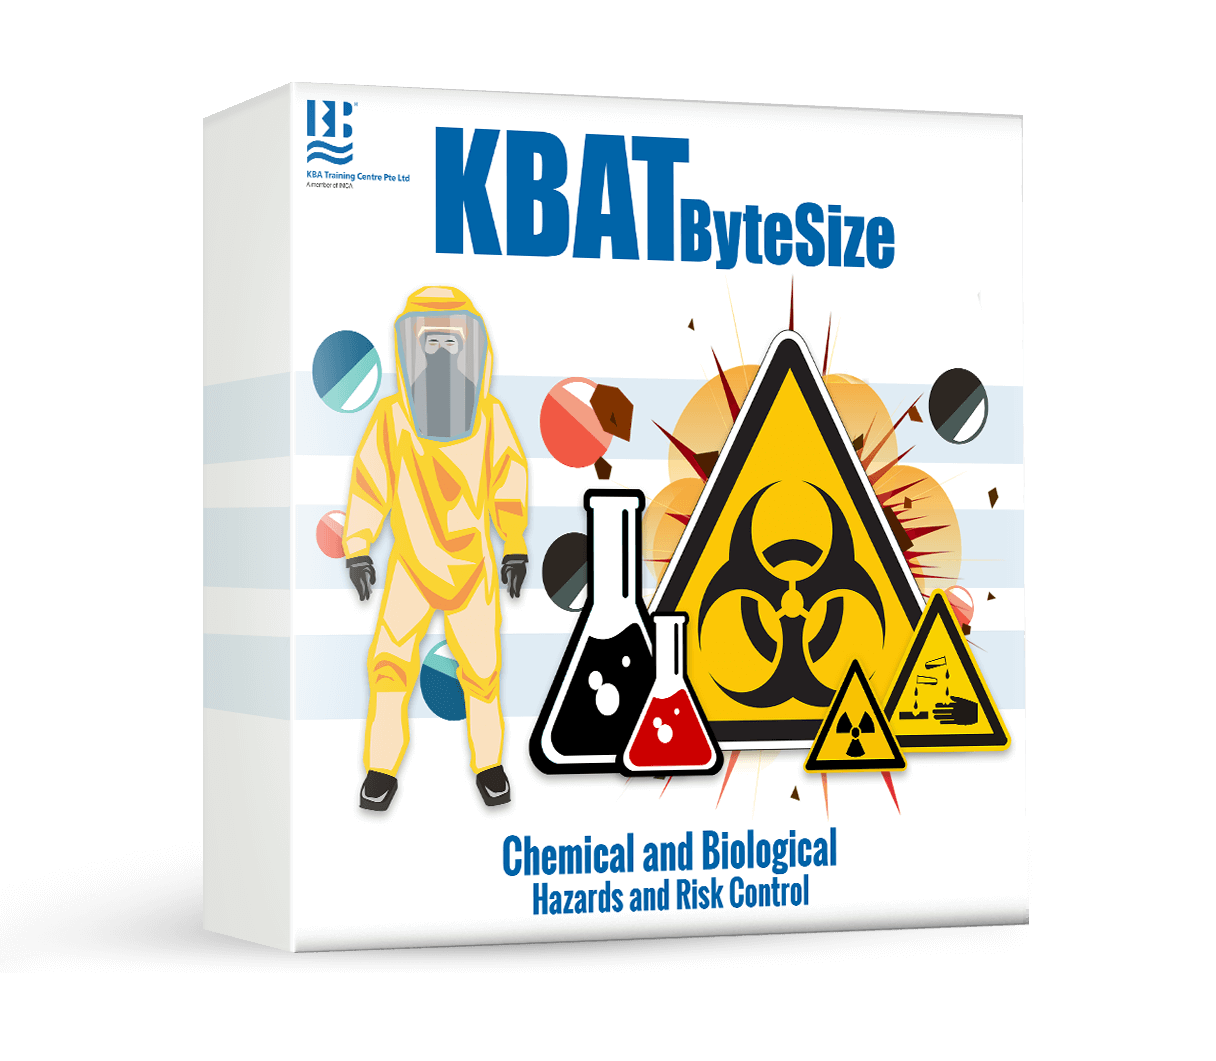 Chemical and Biological Hazards and Risk Control